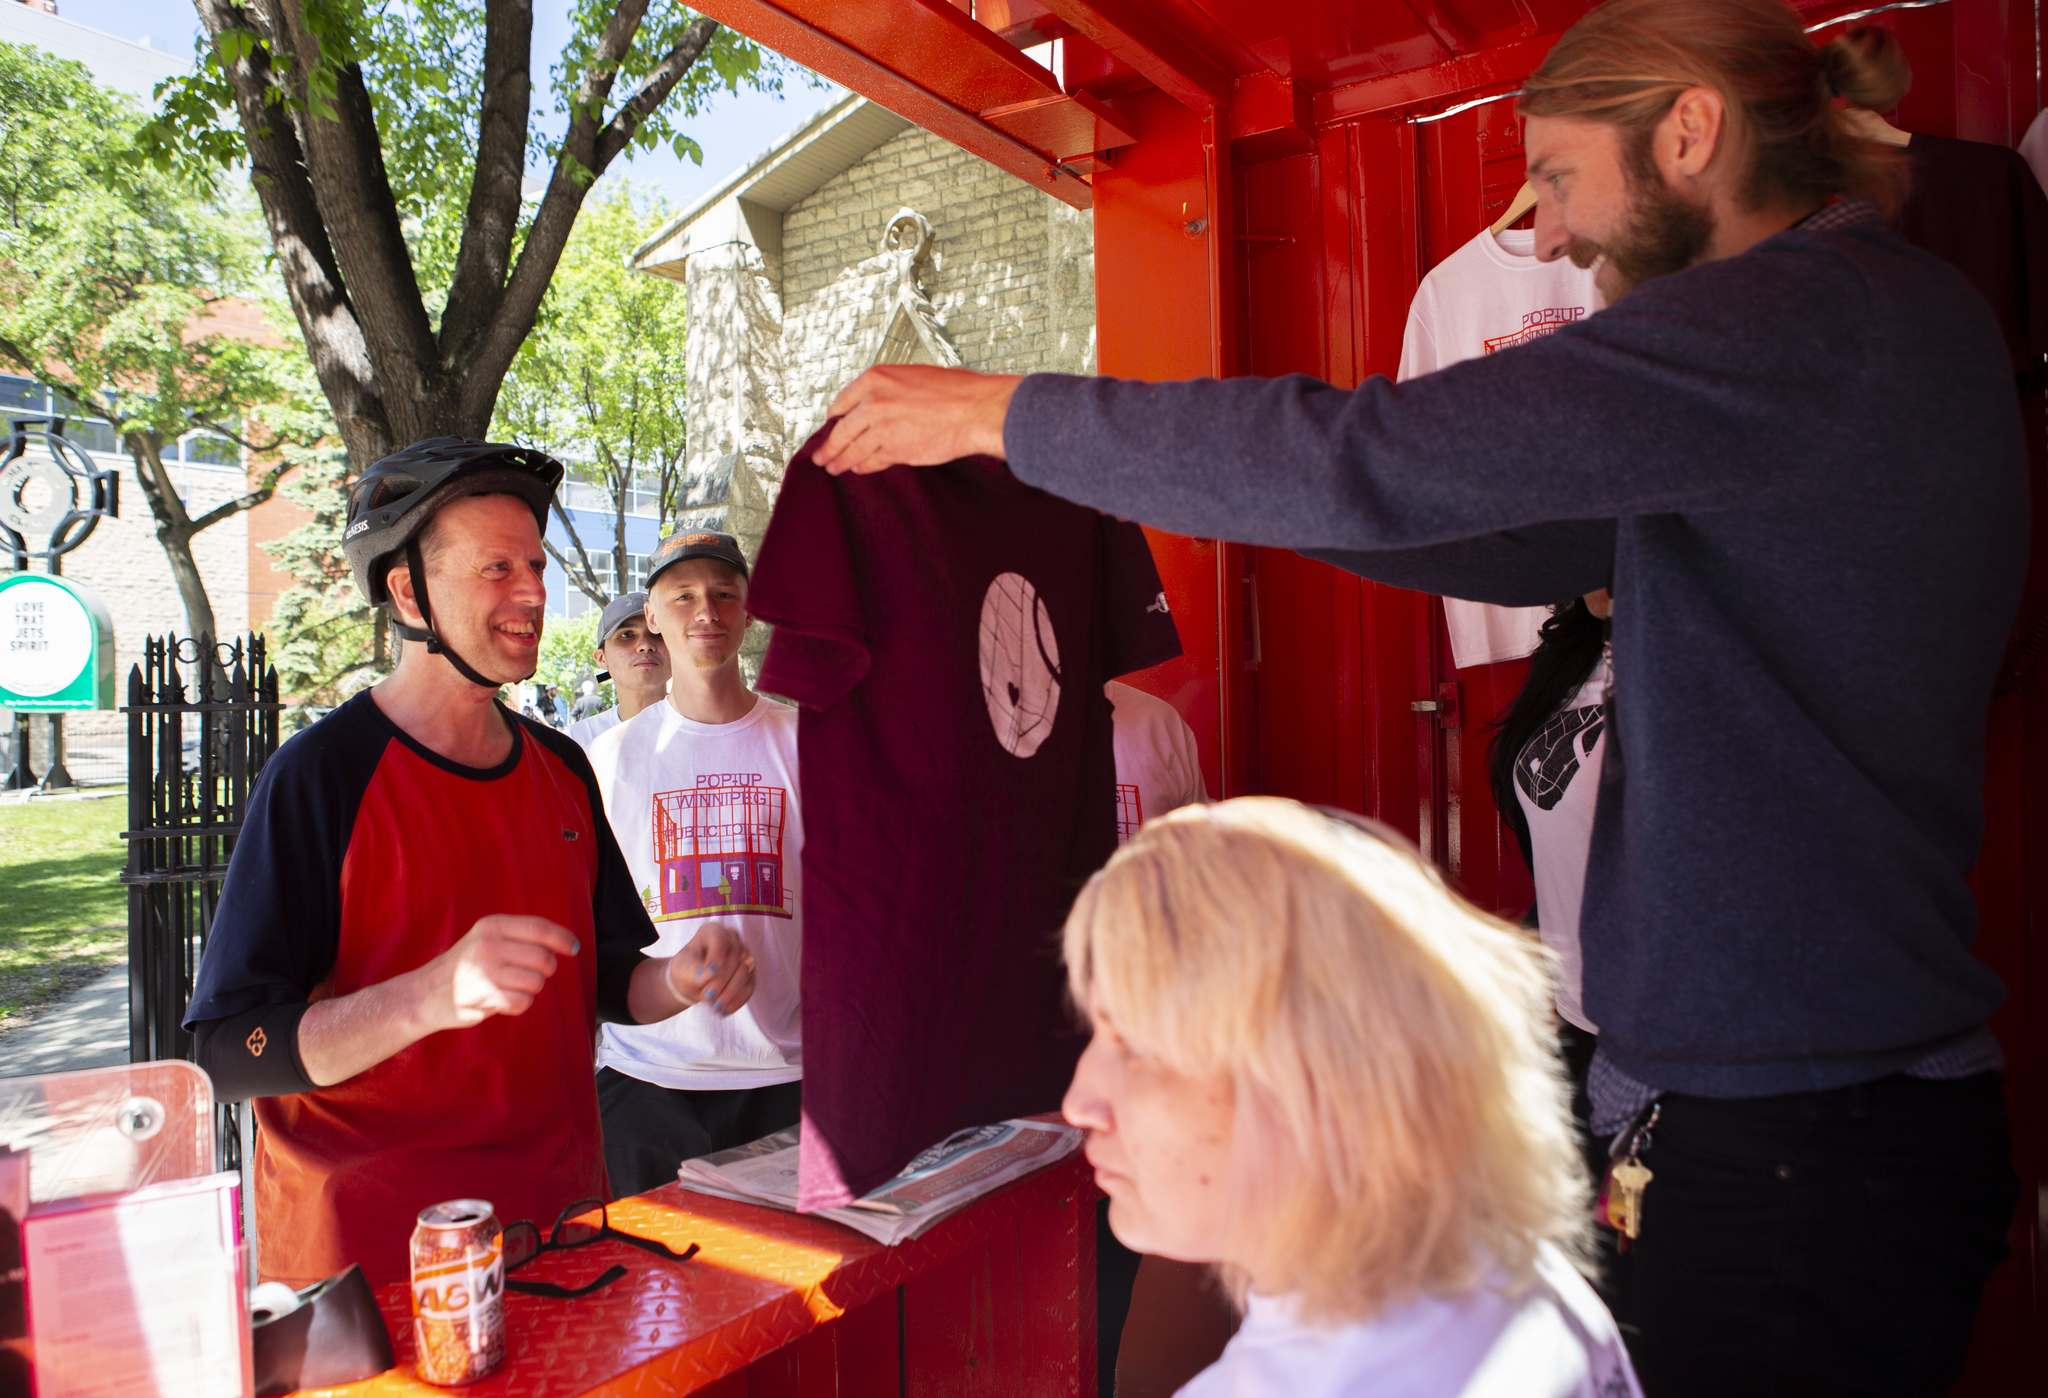 Andrew Ryan / Winnipeg Free Press</p><p>A man purchases a T-shirt from the new pop-up toilet, which also sells newspapers and water bottles. All proceeds will go to Siloam Mission. </p>